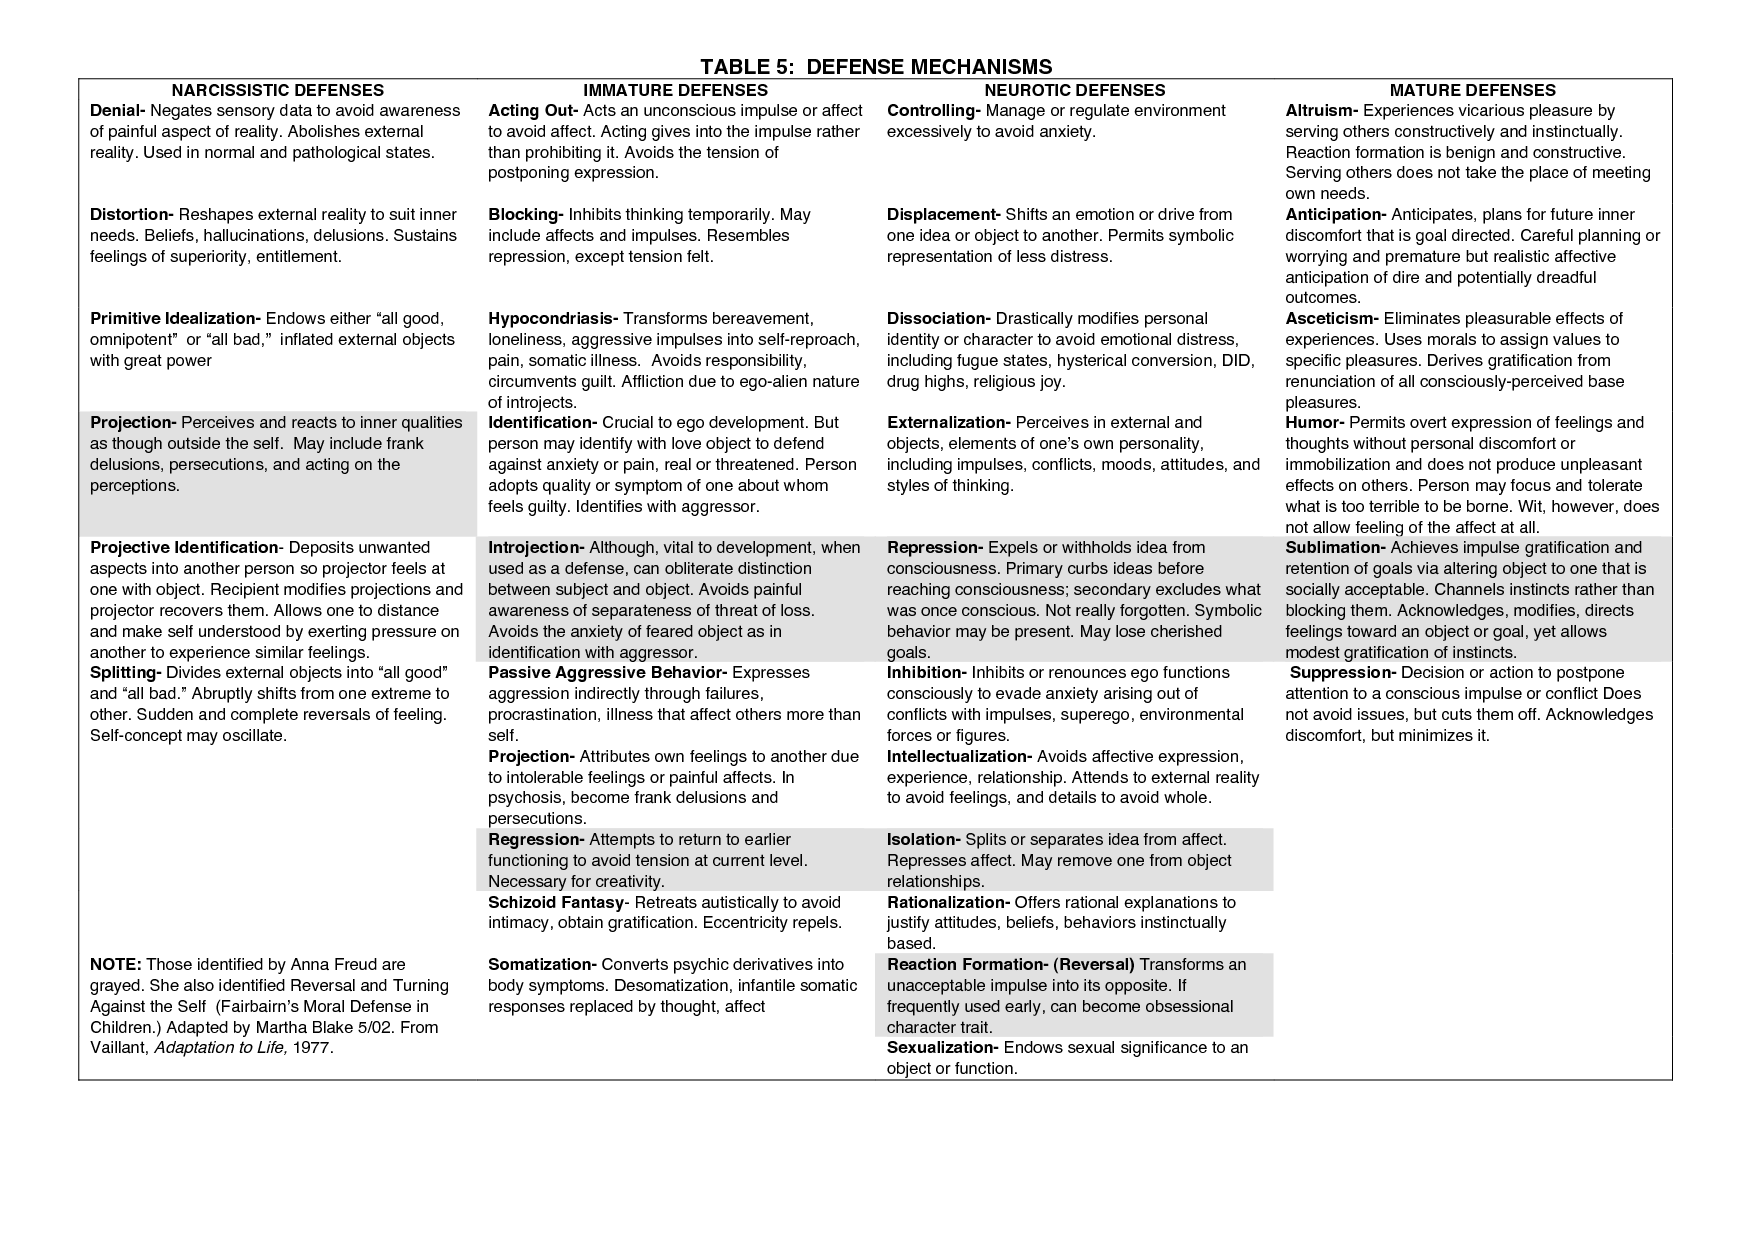 Table Defense Mechanisms With Images